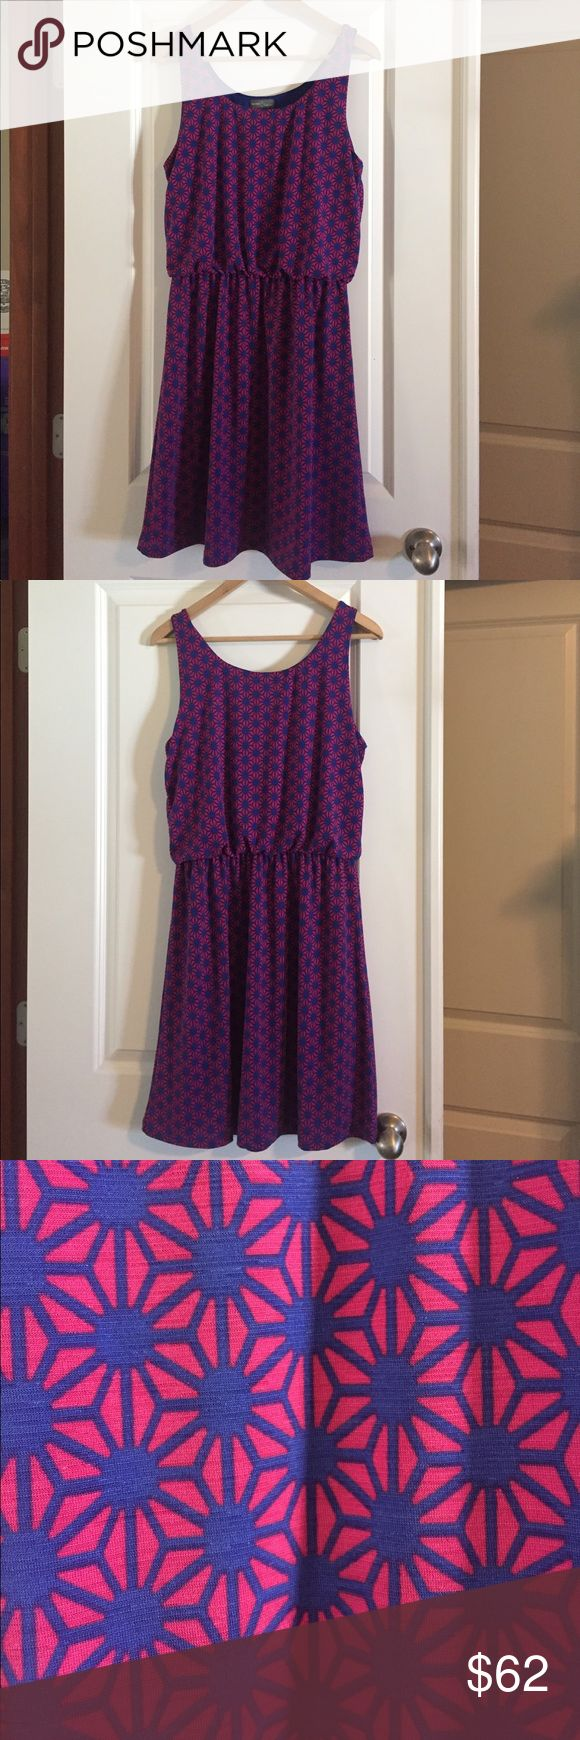 NWT Stitch Fix Dress NWT Market and Spruce dress from Stitch Fix. Great colors for spring and summer!  Would look adorable under a denim jacket.  Measures 38 inches from shoulder to bottom. Price is firm unless bundled. market and spruce Dresses Midi